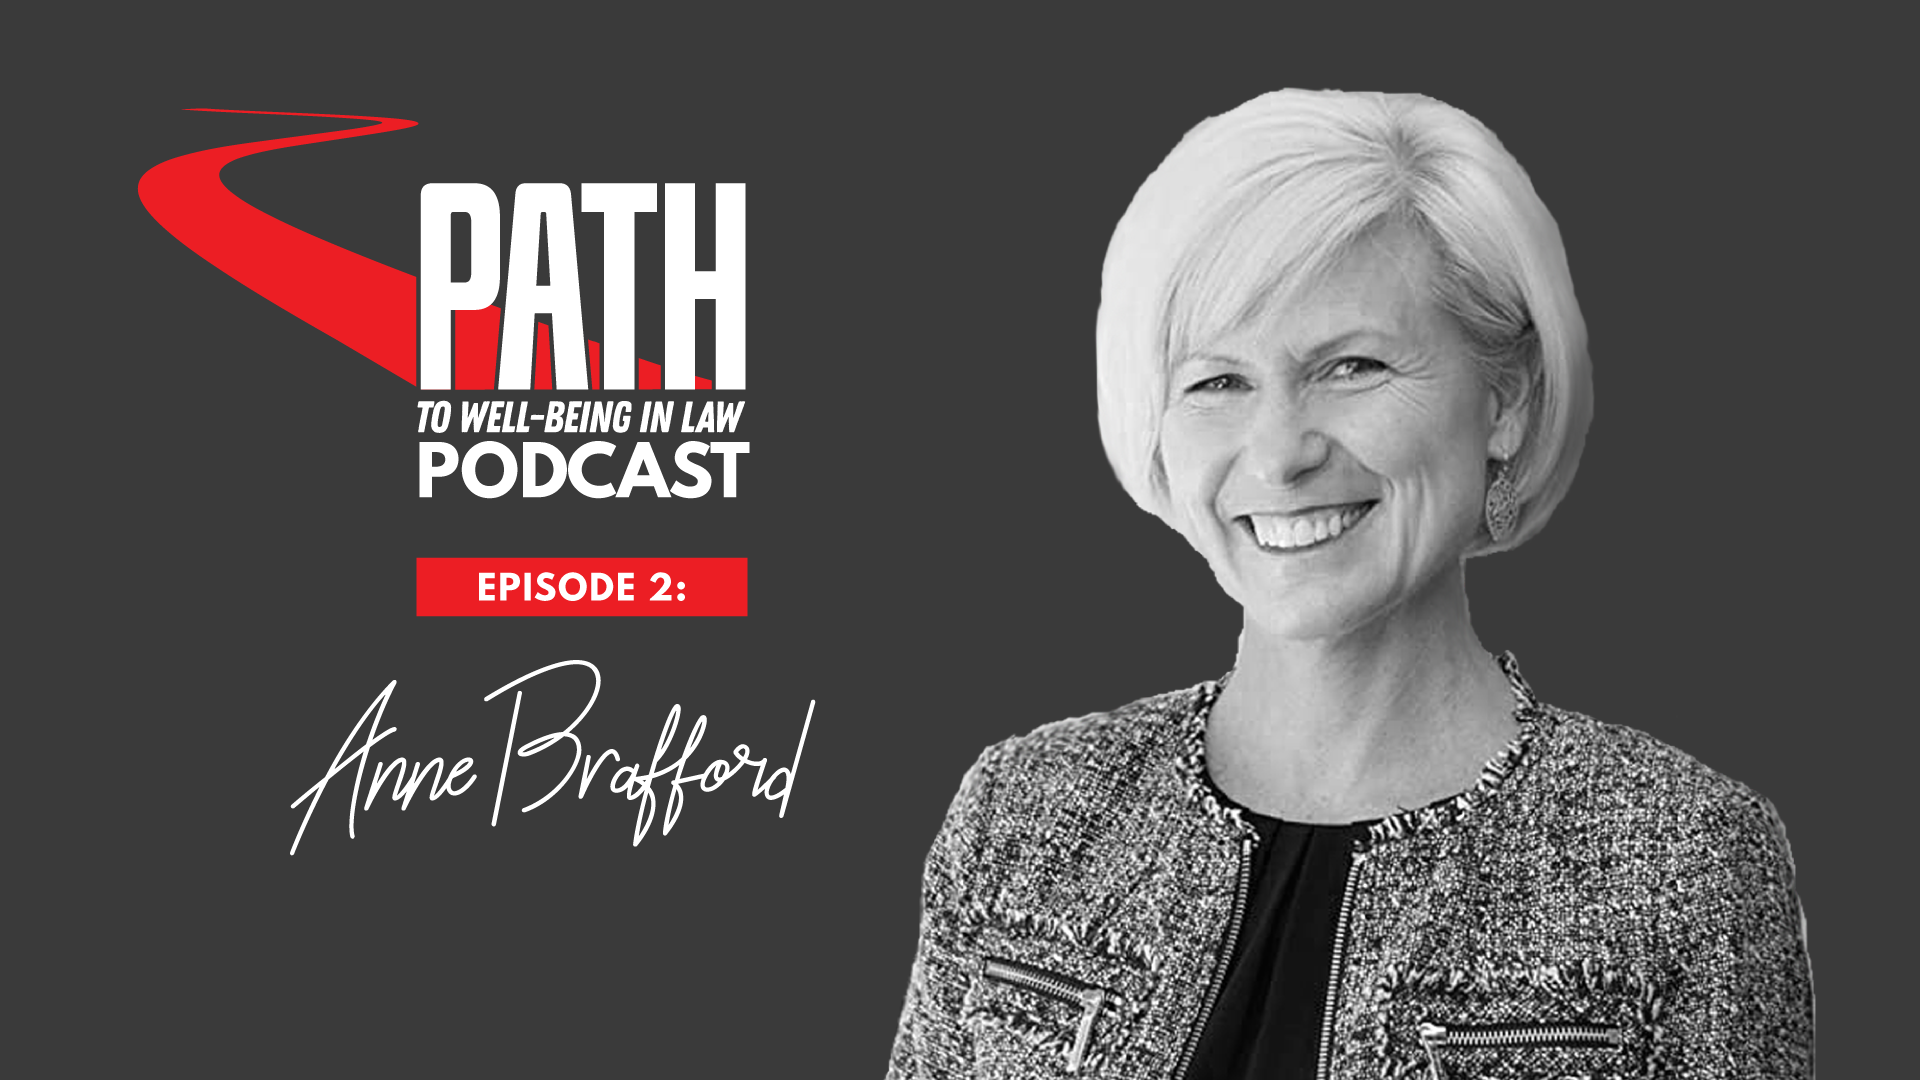 Anne Brafford on the path to wellbeing in law podcast